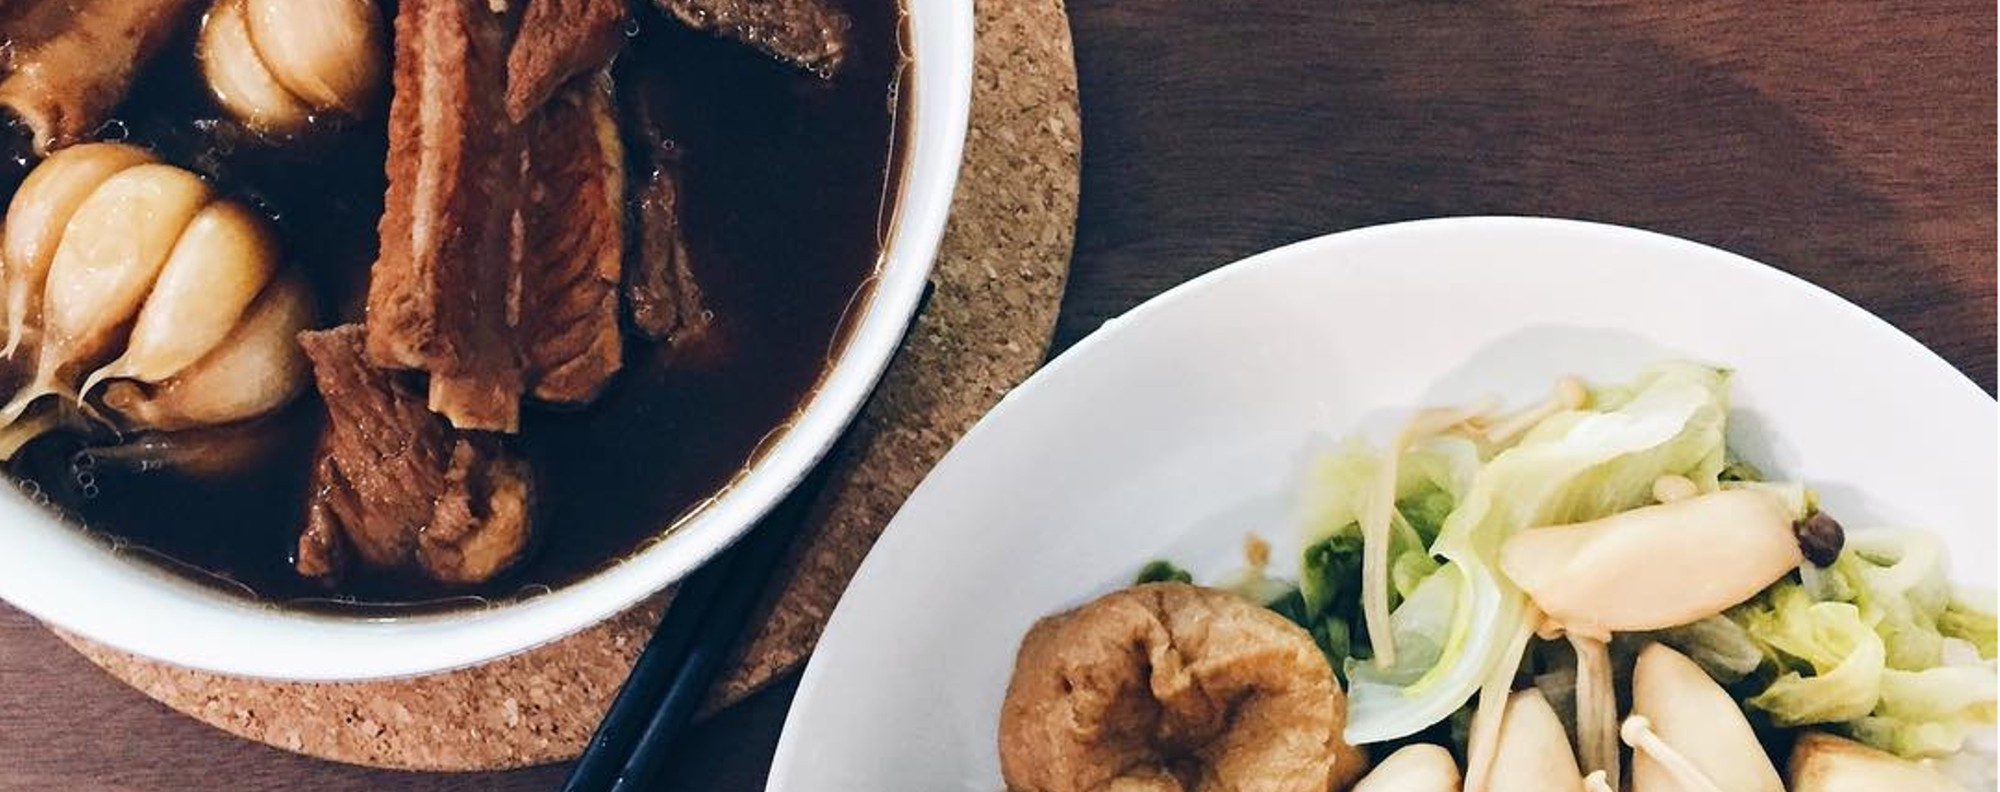 Is bak kut teh from Malaysia or Singapore? Photo: Instagram @ellicia.f